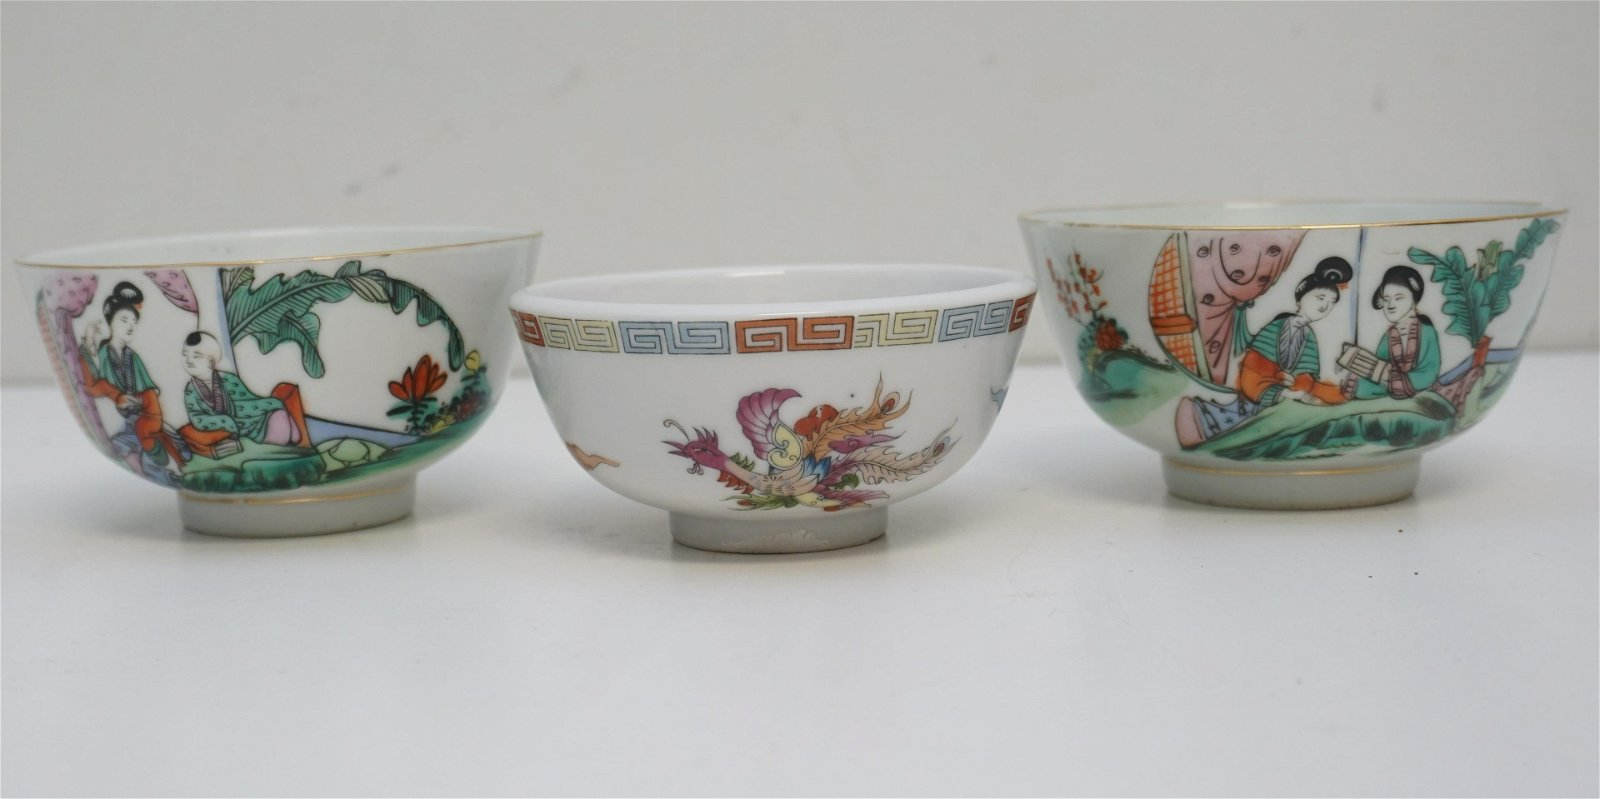 3 CHINESE PORCELAIN RICE BOWLS